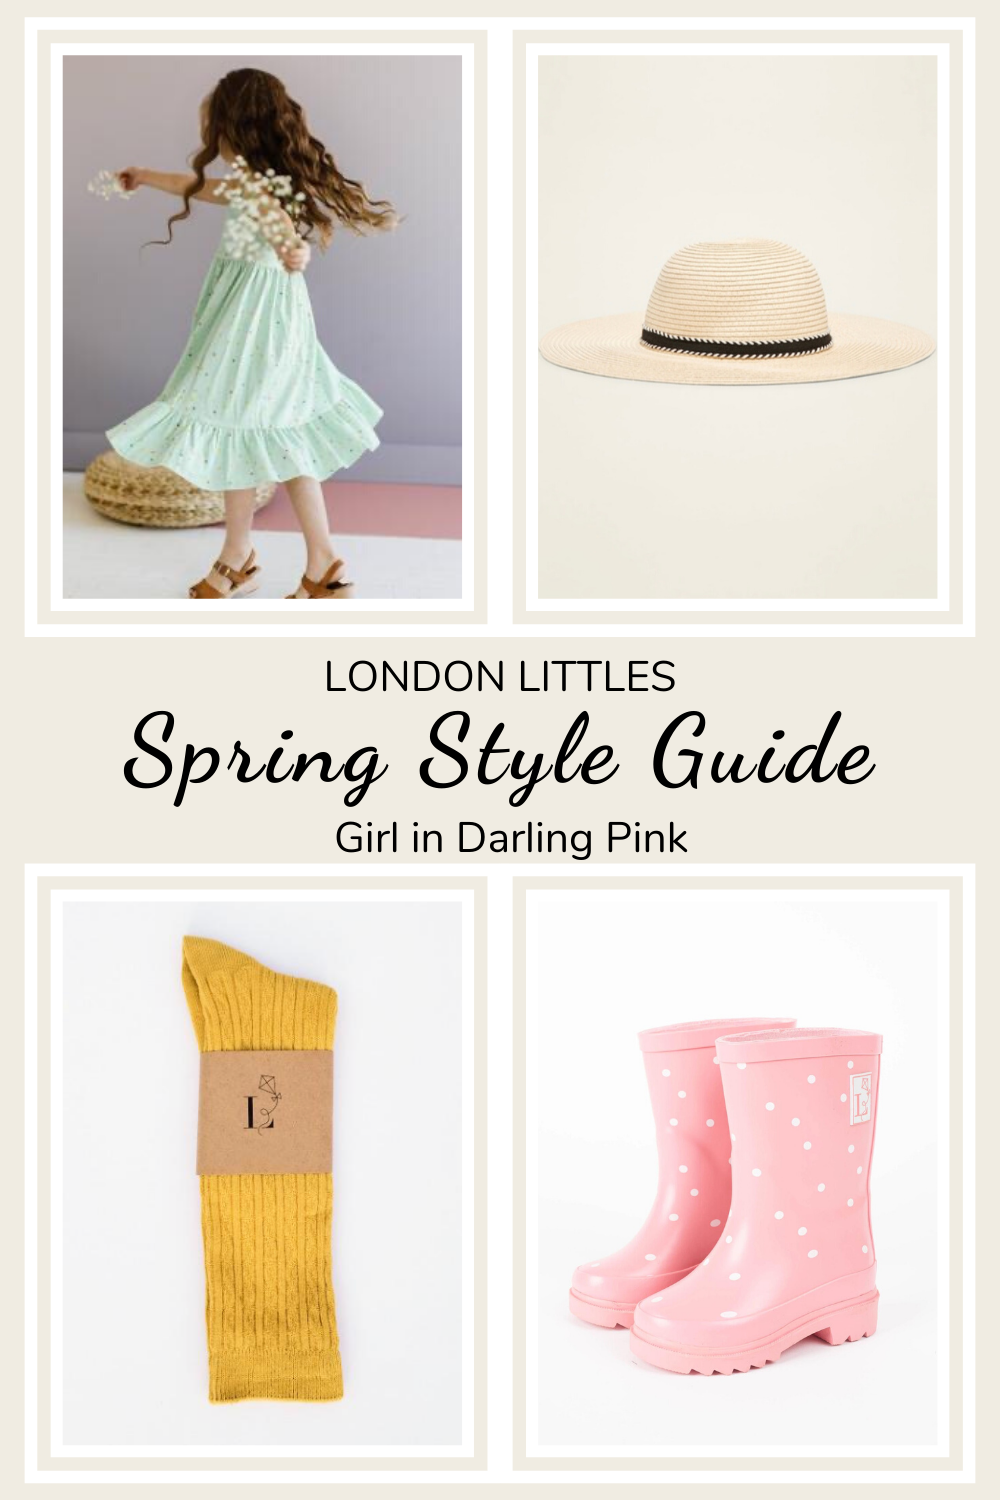 Spring Style Guide girl outfit with dress and rainboots